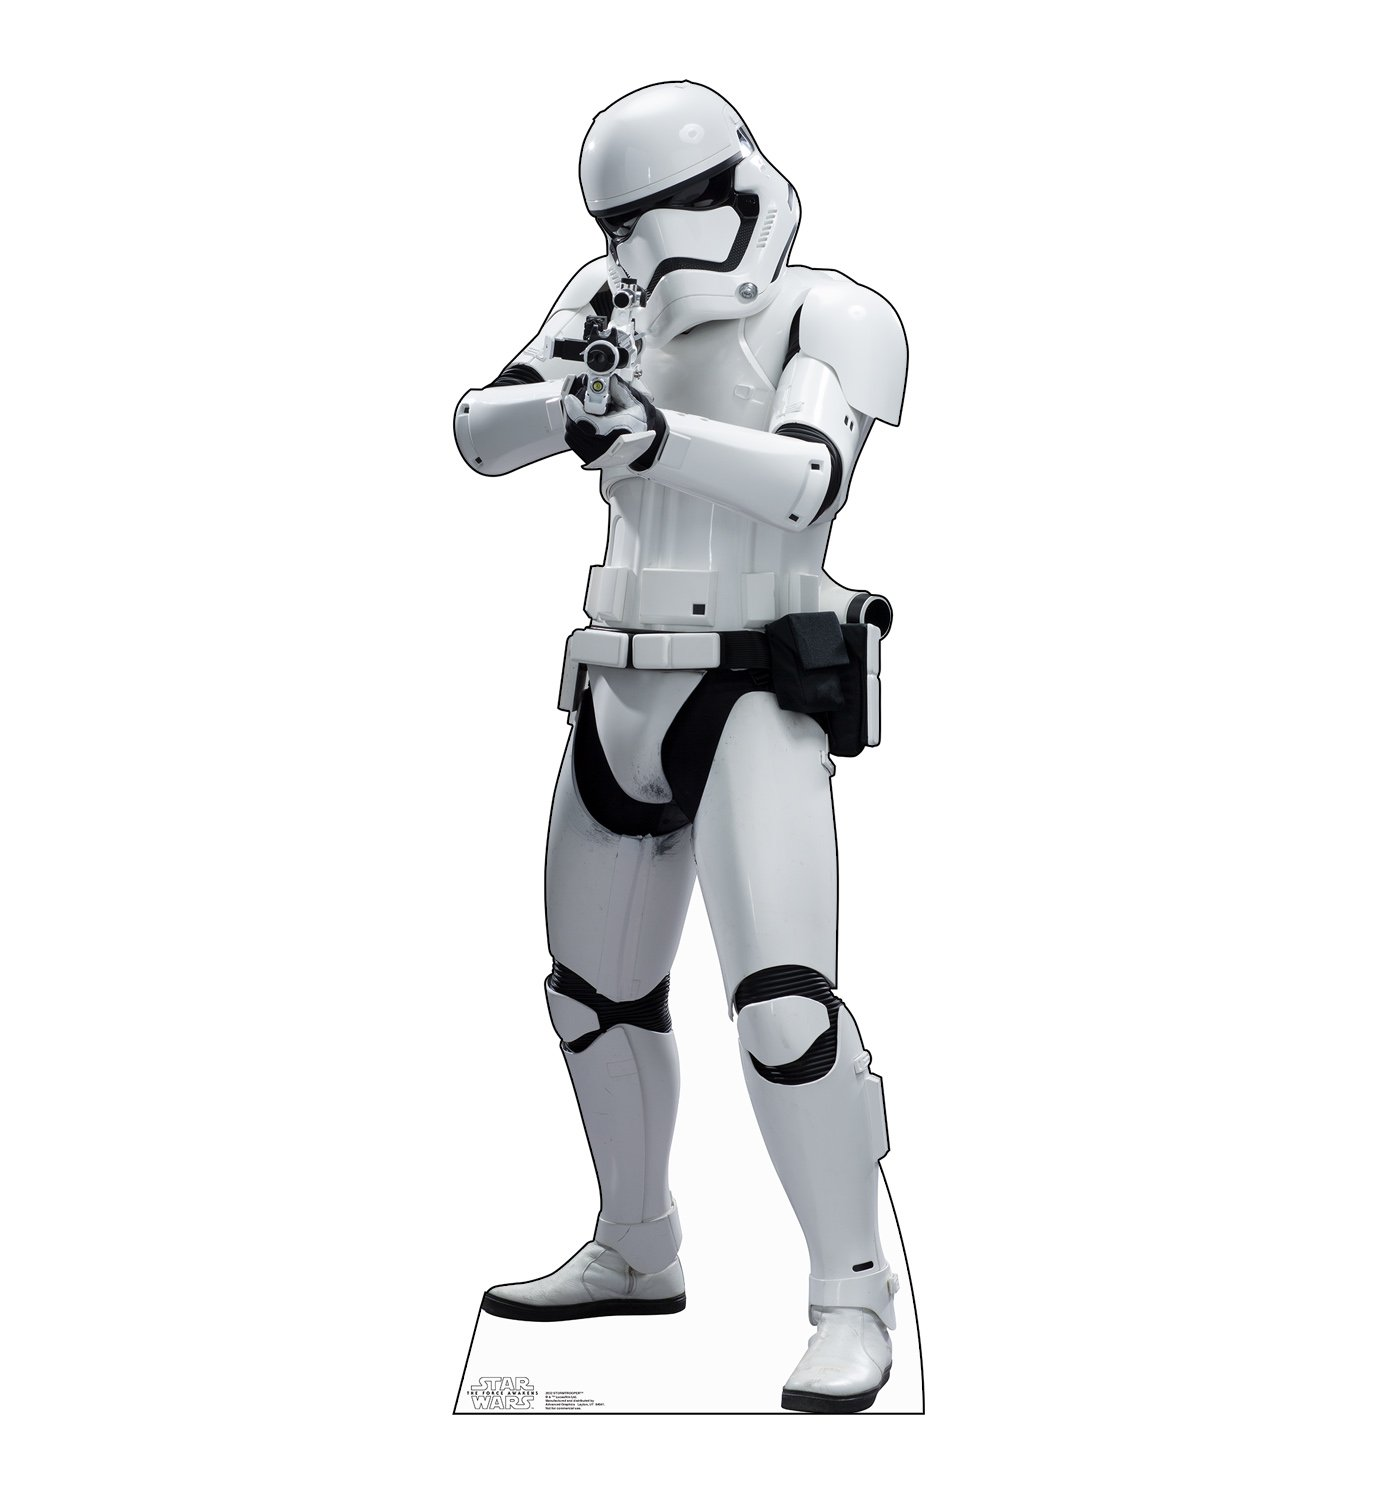 Advanced Graphics Stormtrooper Life Size Cardboard Cutout Standup - Star Wars VII: The Force Awakens by Advanced Graphics